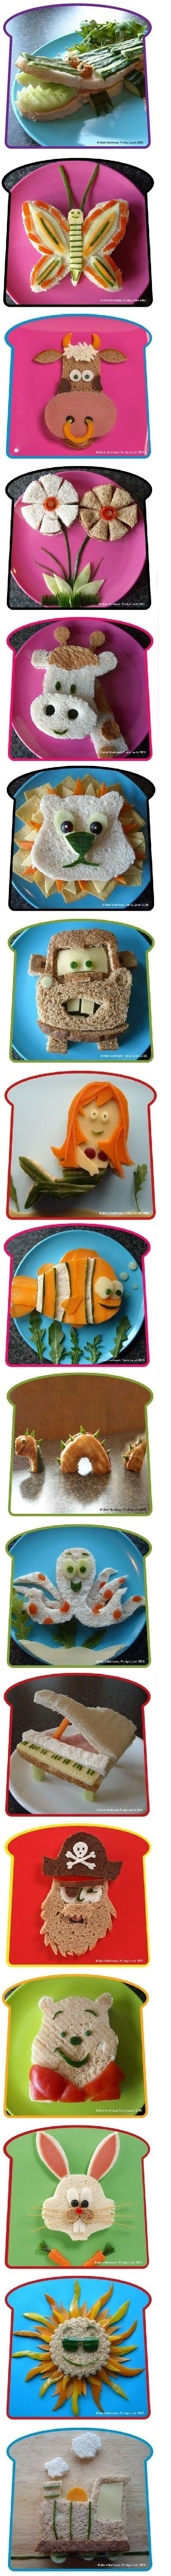 Fantastic kids sandwich creations!